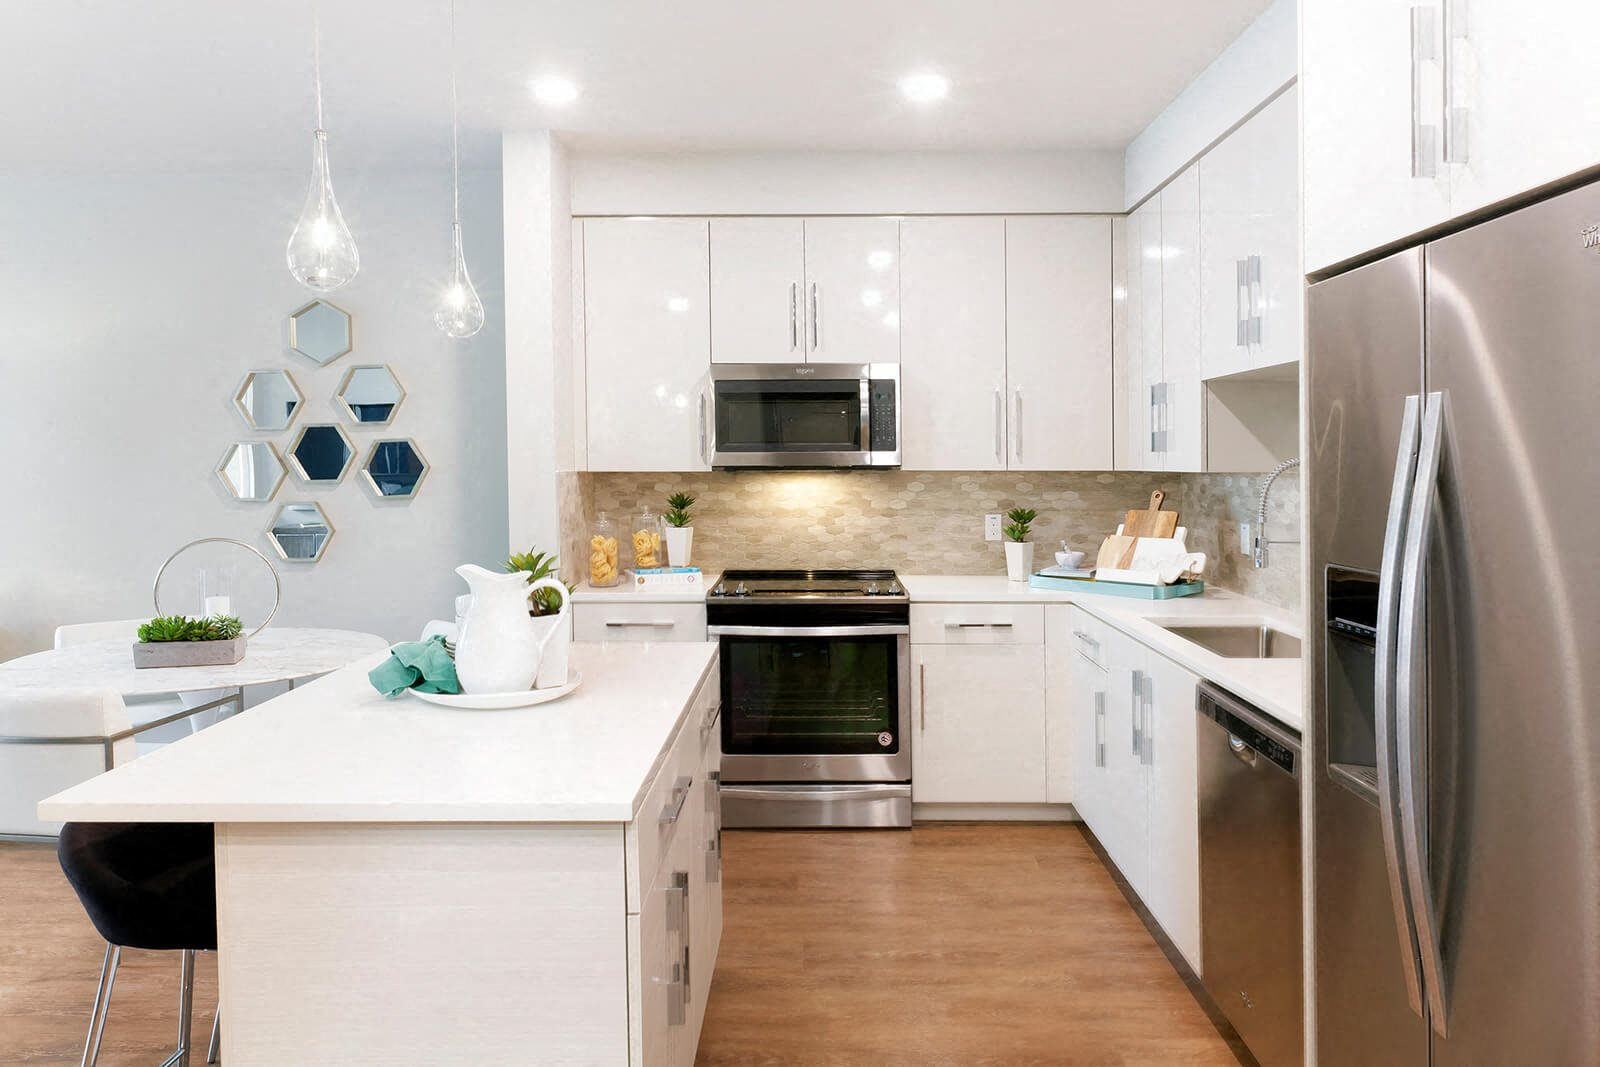 Fully Equipped Kitchen at Blu Harbor by Windsor, California, 94063